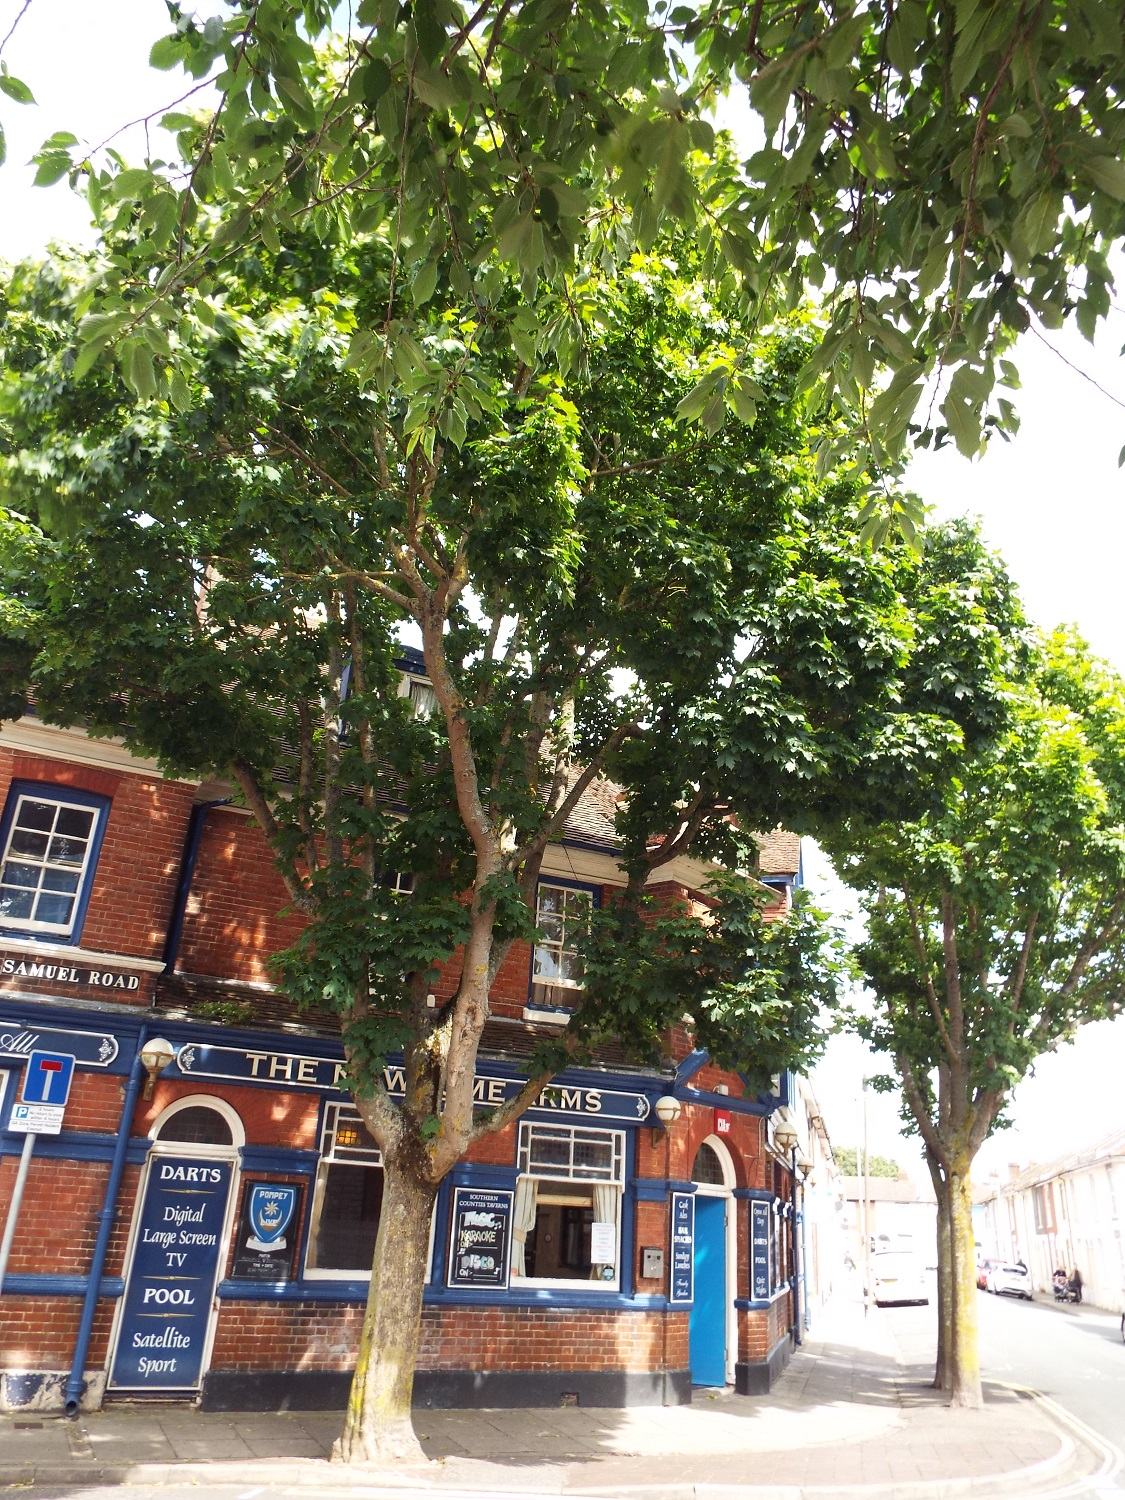 Newcome Arms and sycamore trees, Fratton, Portsmouth - a car and tarmac environment